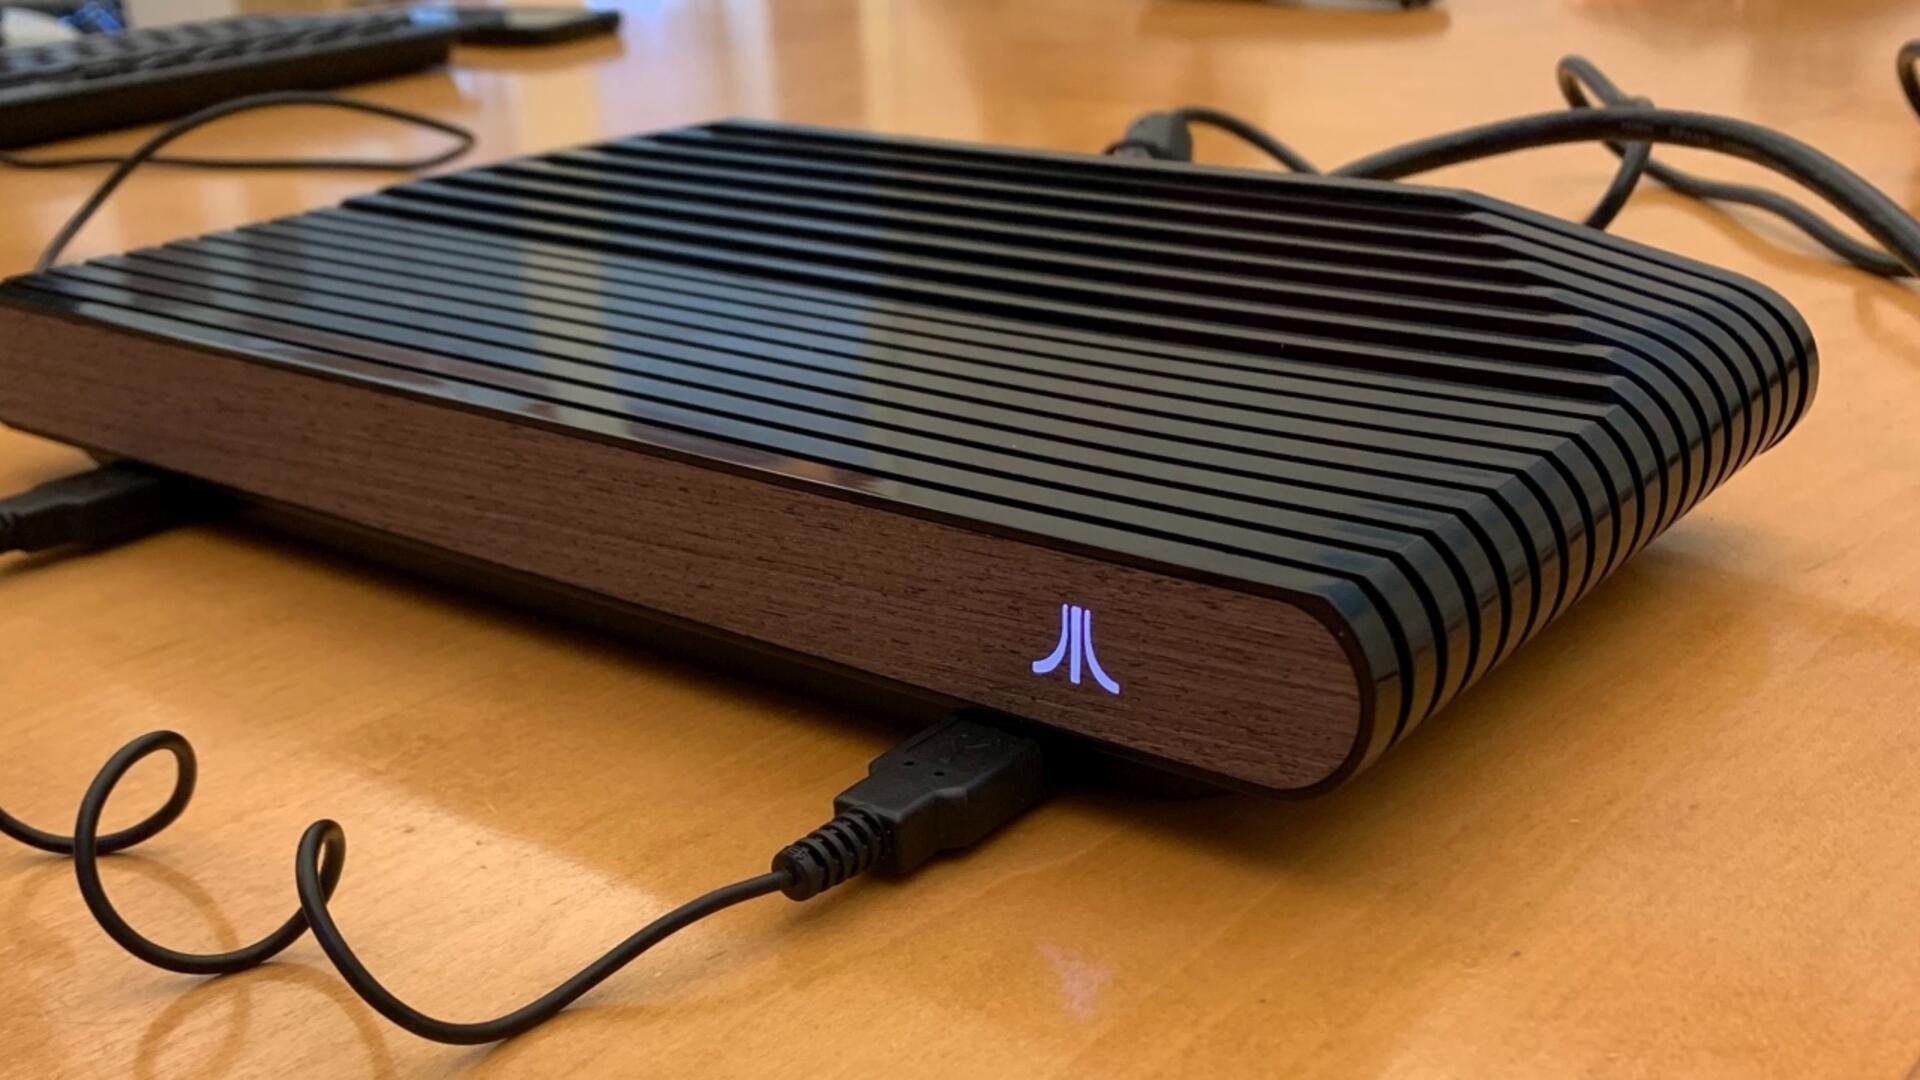 Interview: We Ask Atari's CEO About Lingering Questions Surrounding Its Retro Linux Box